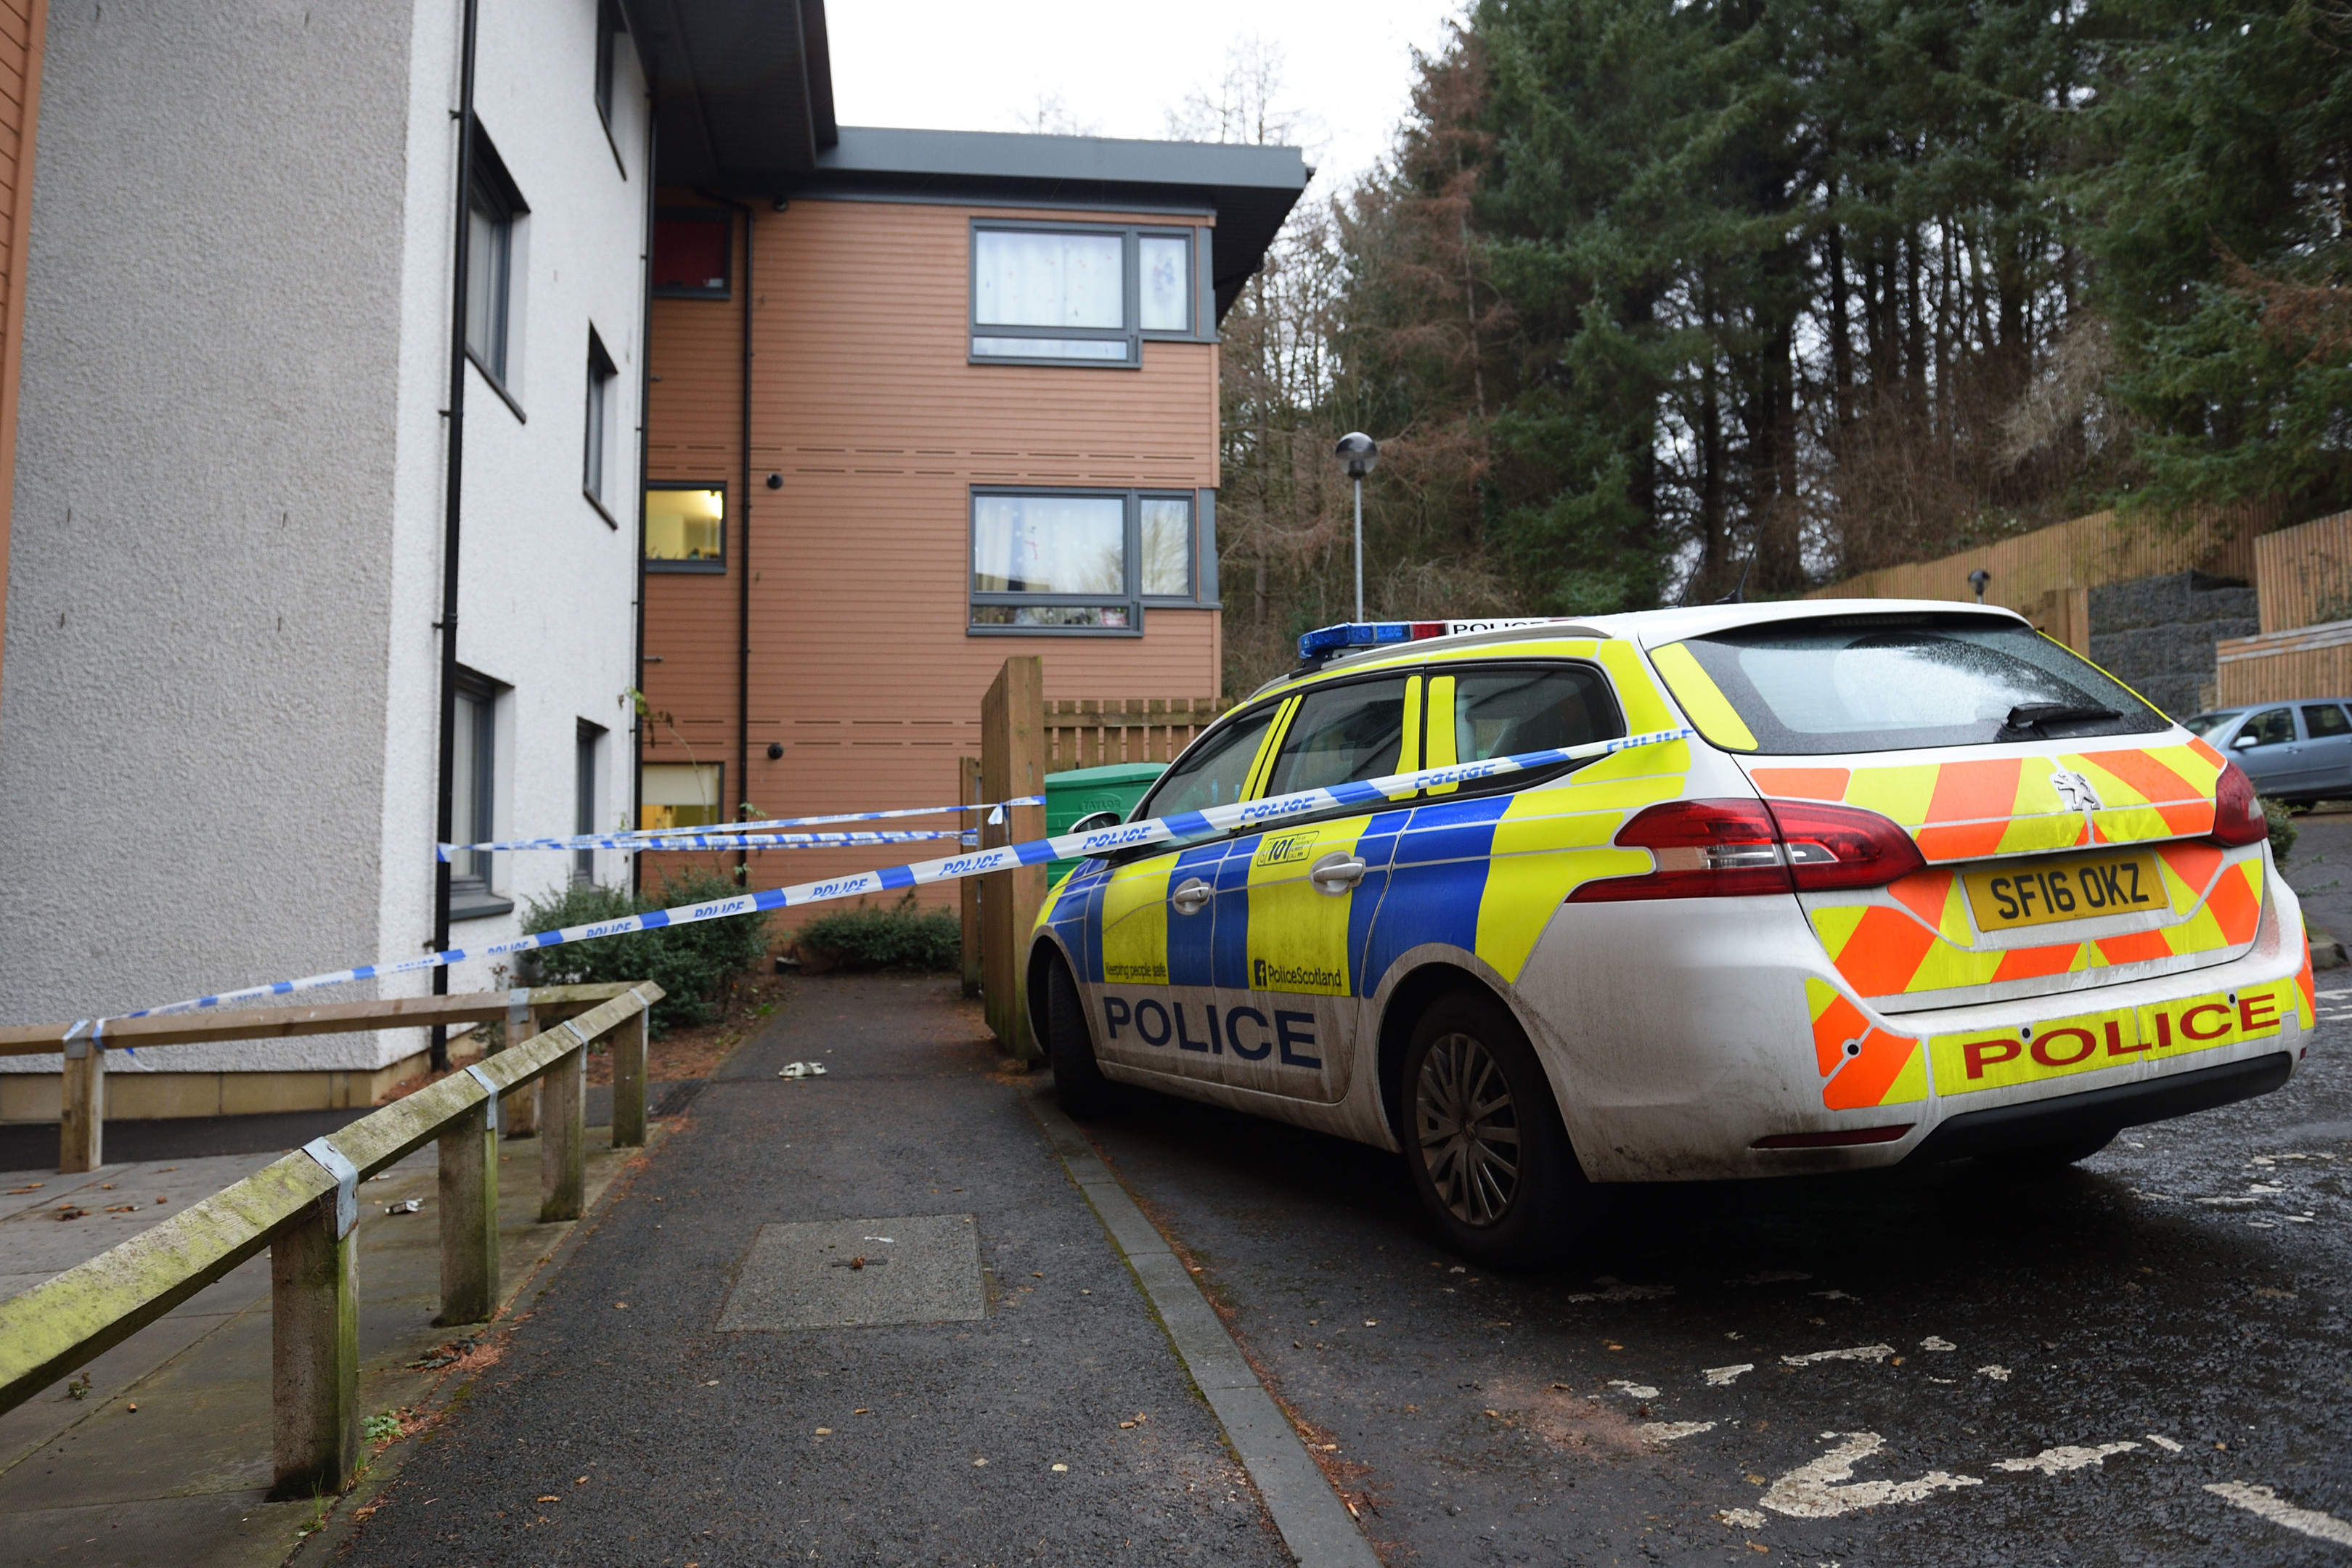 The taped off area at Wallace Court.